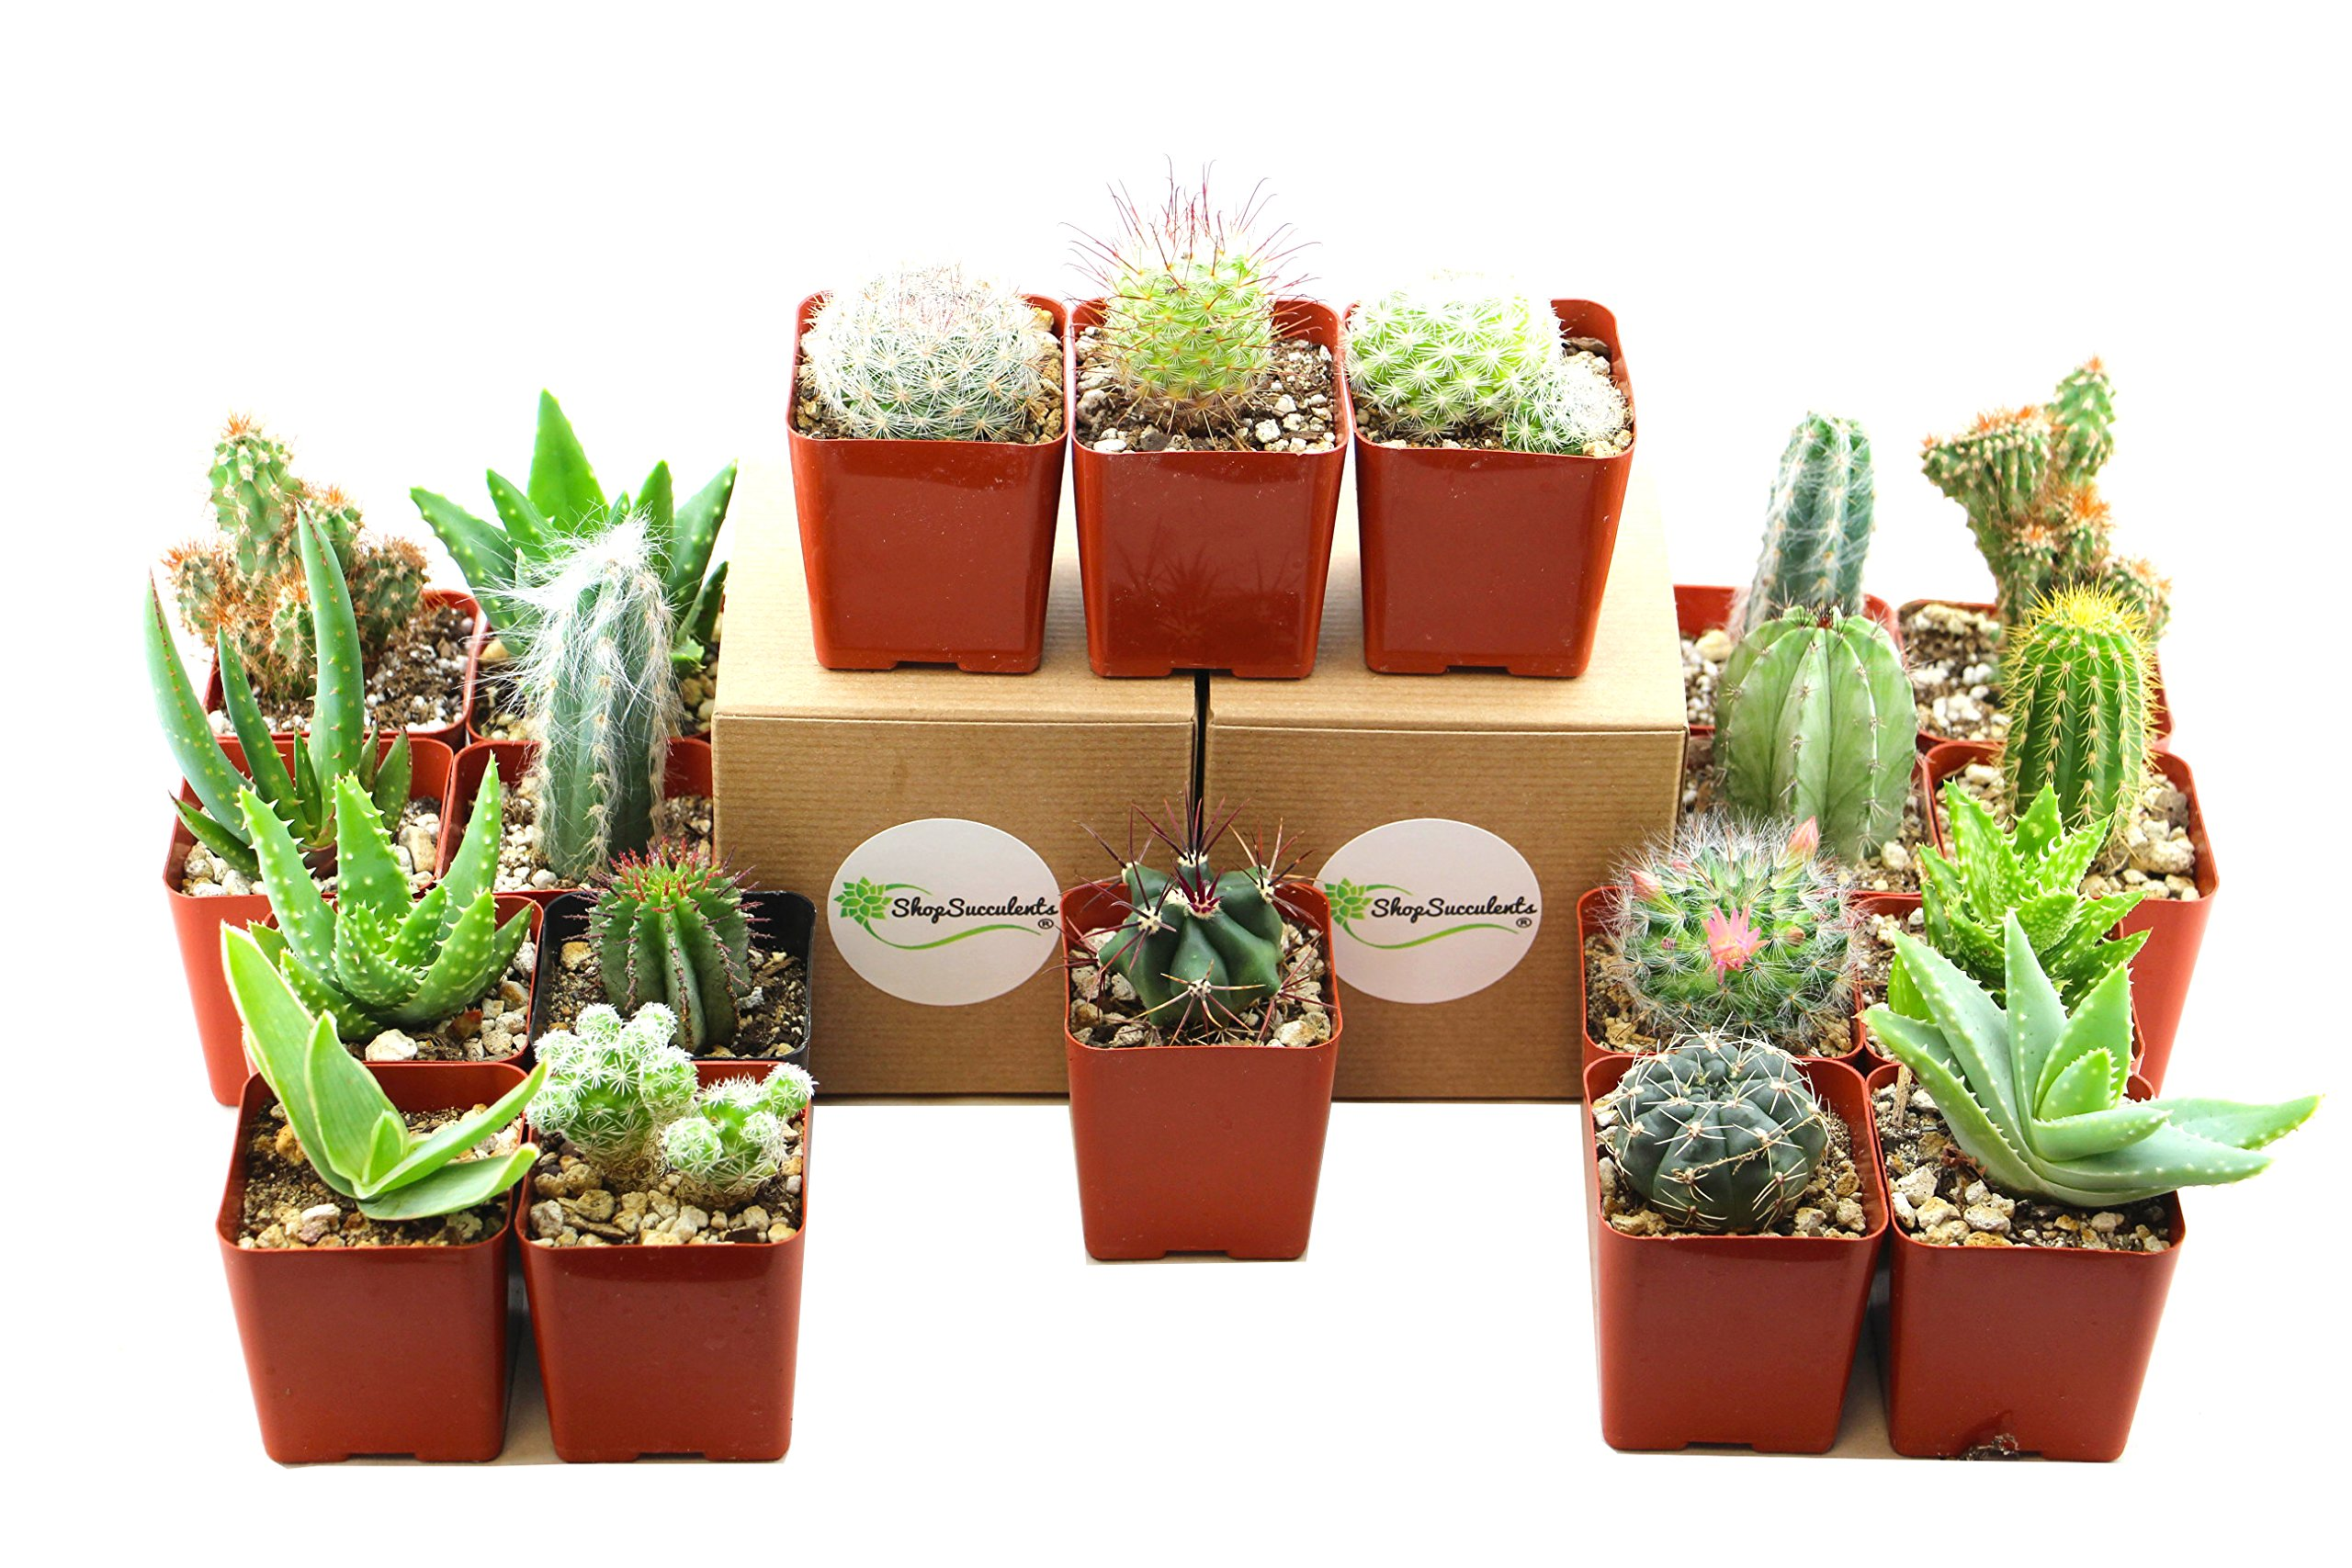 Shop Succulents | Hardy Cactus & Succulent of of Live Succulent Plants, Hand Selected Variety Pack of of Cacti & Succulents | Collection of 12 in2.5'' pots